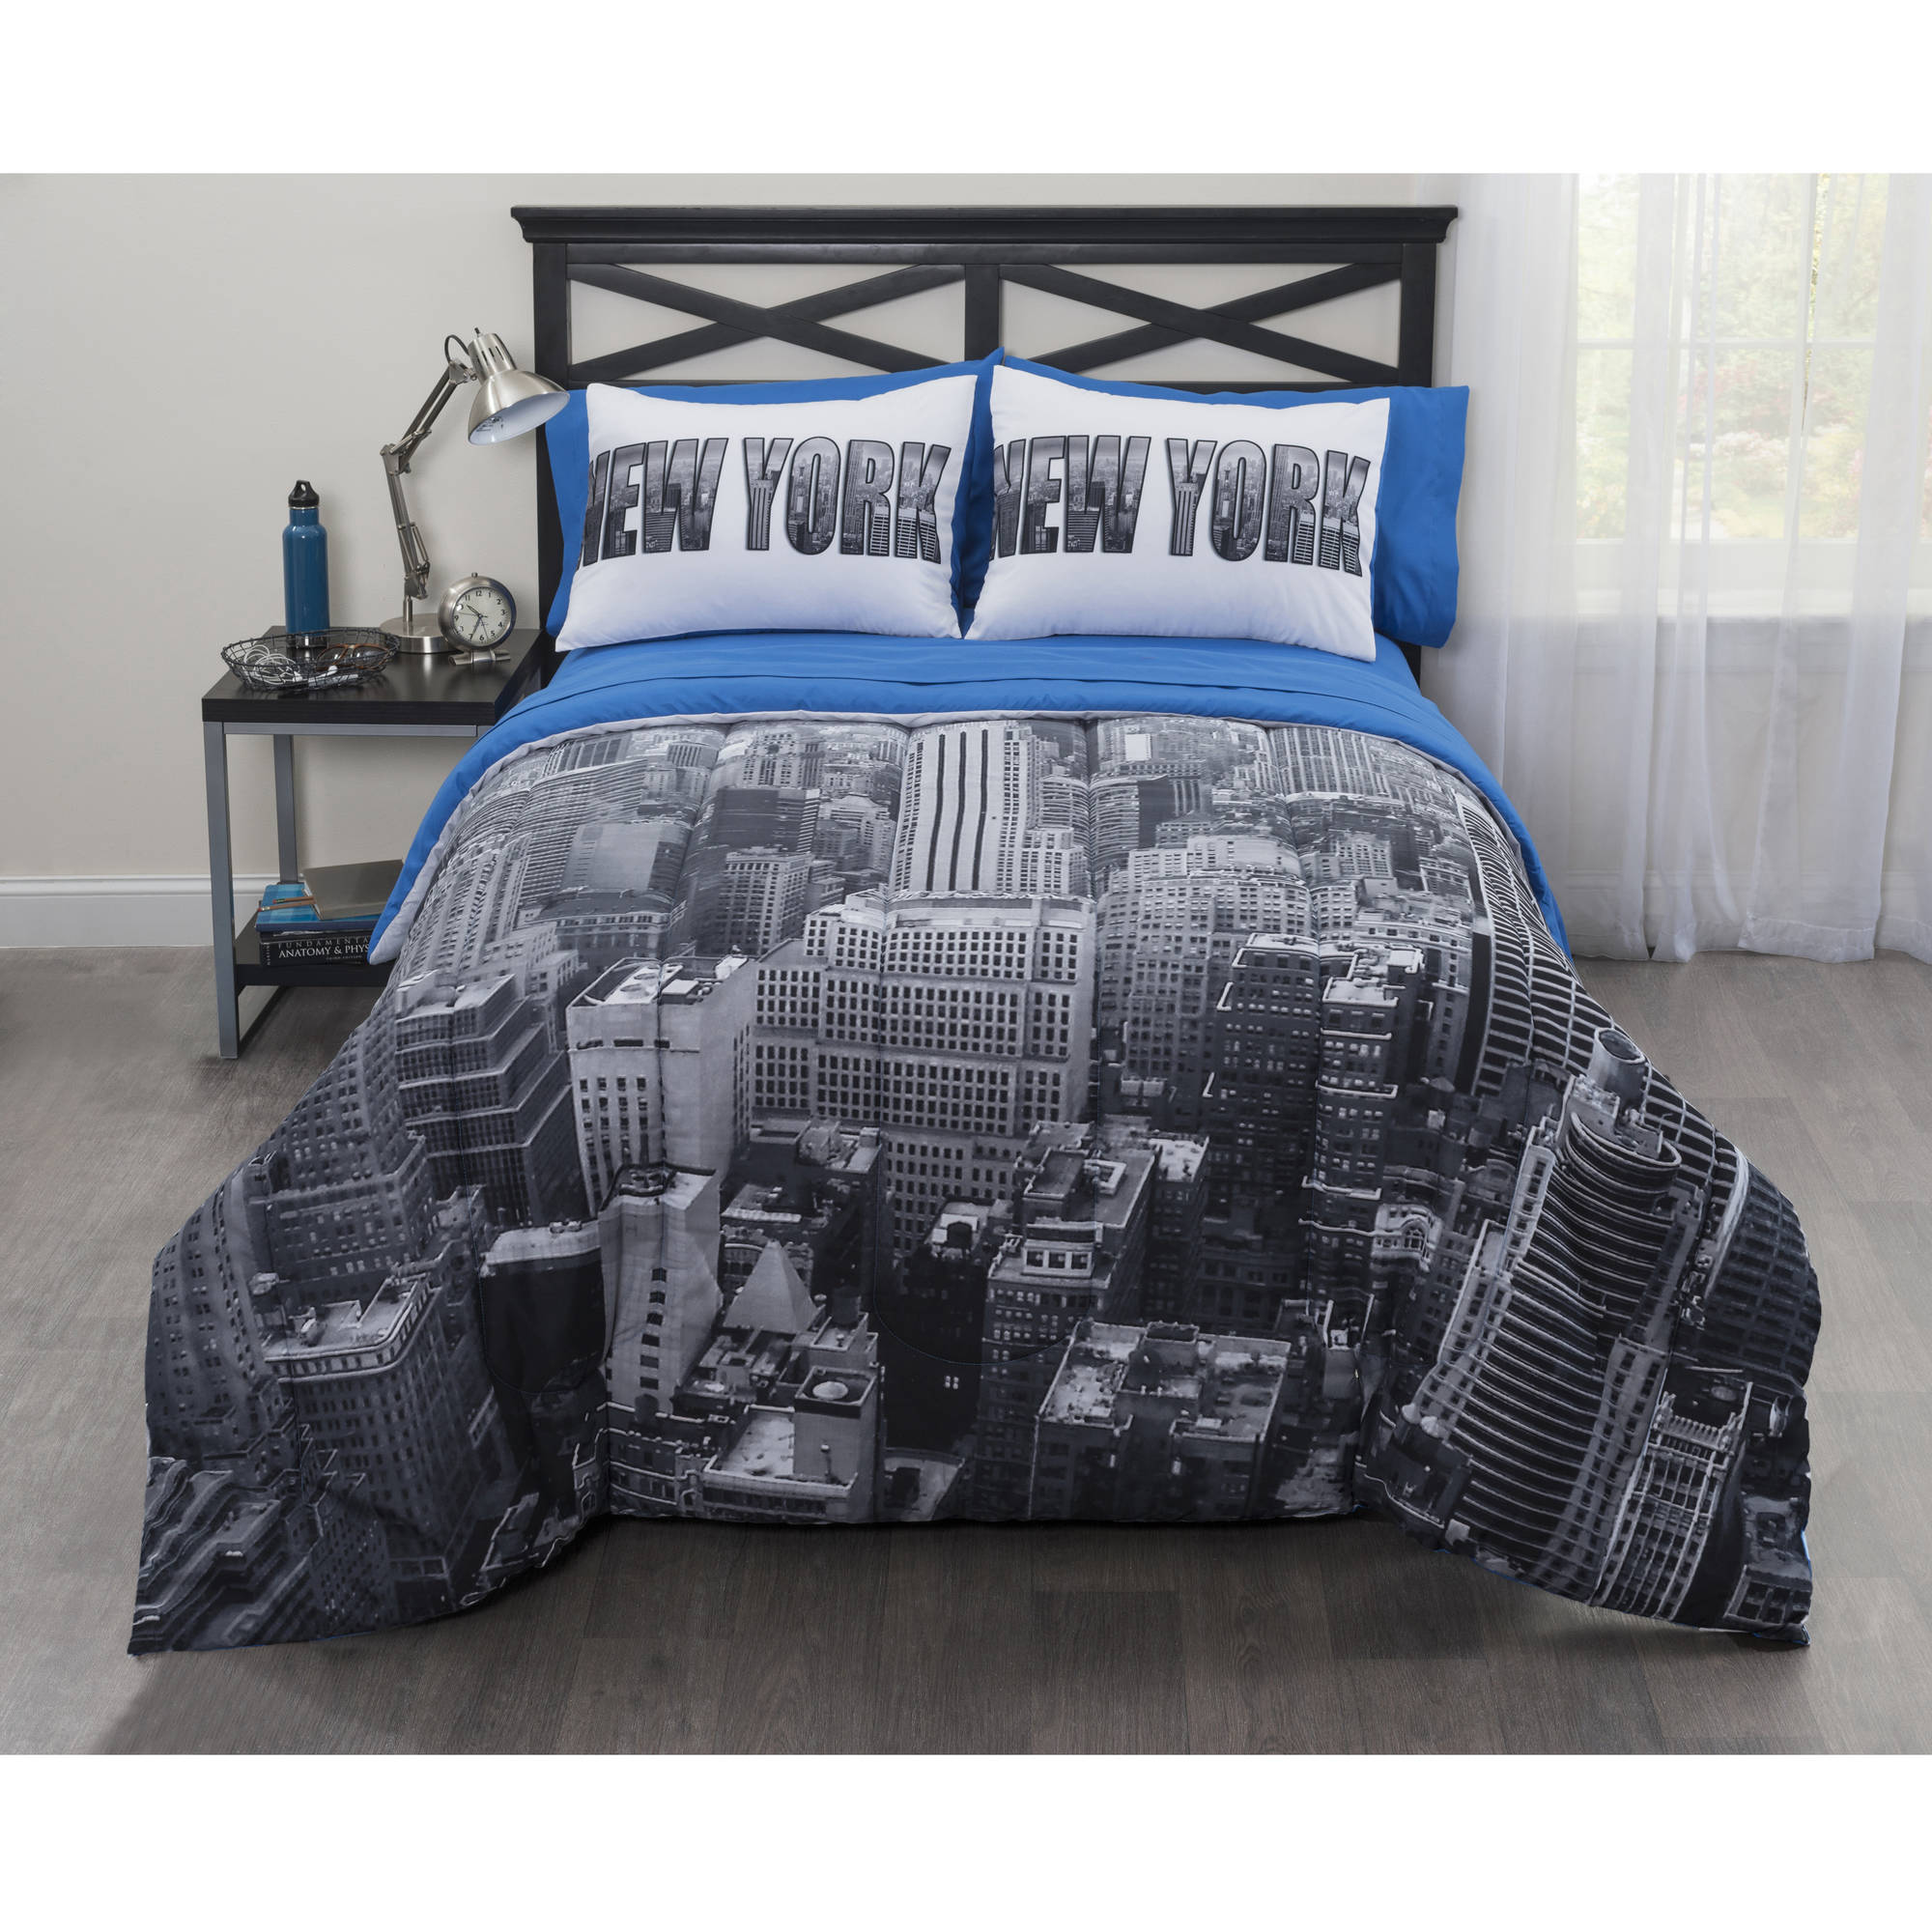 CASA Photoreal New York City Bed-In-A-Bag Comforter Set